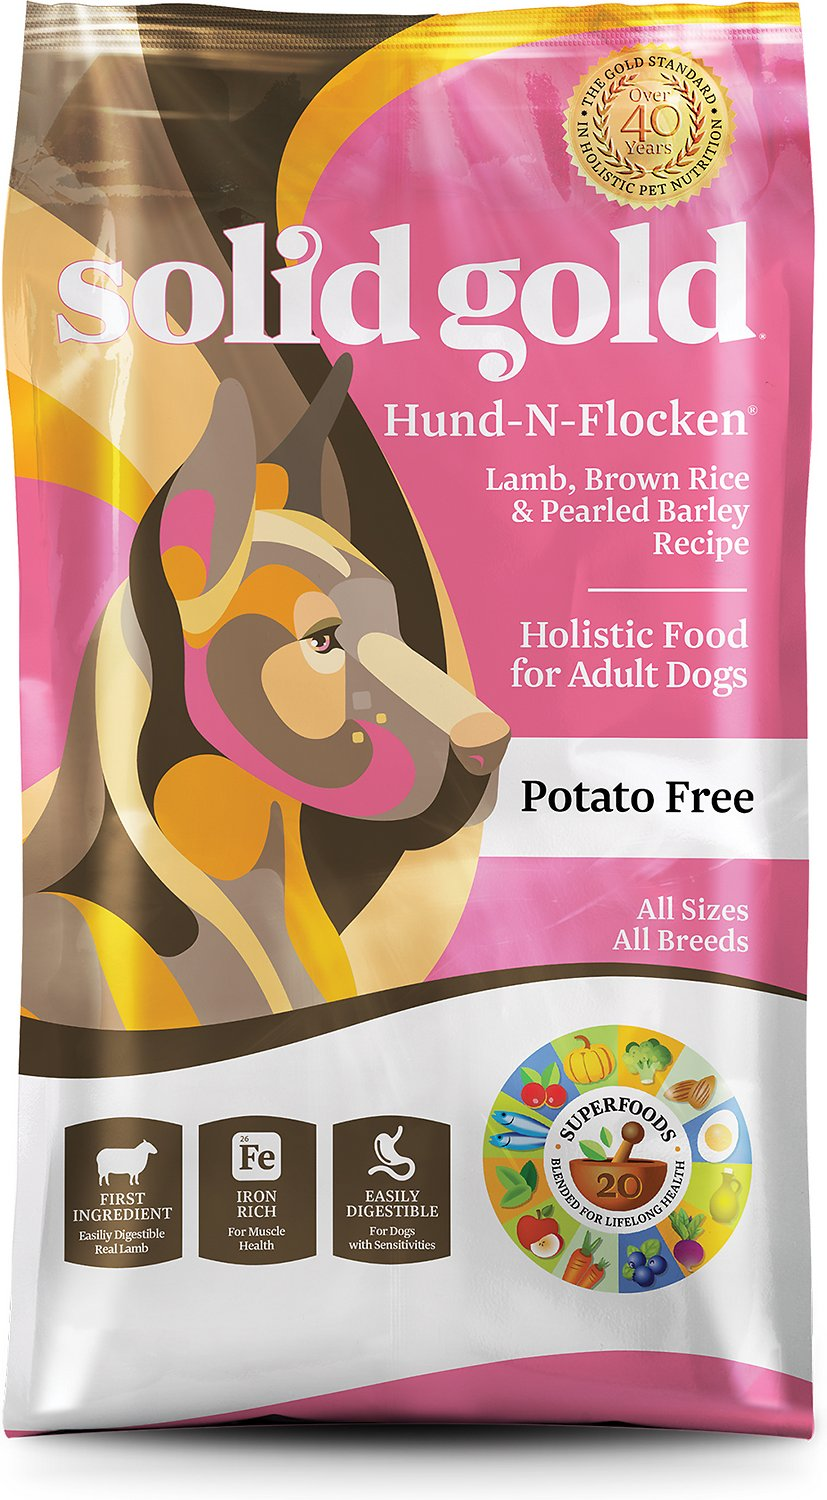 Solid Gold Hund-n-Flocken Lamb, Brown Rice & Pearled Barley Recipe Adult Dry Dog Food Image